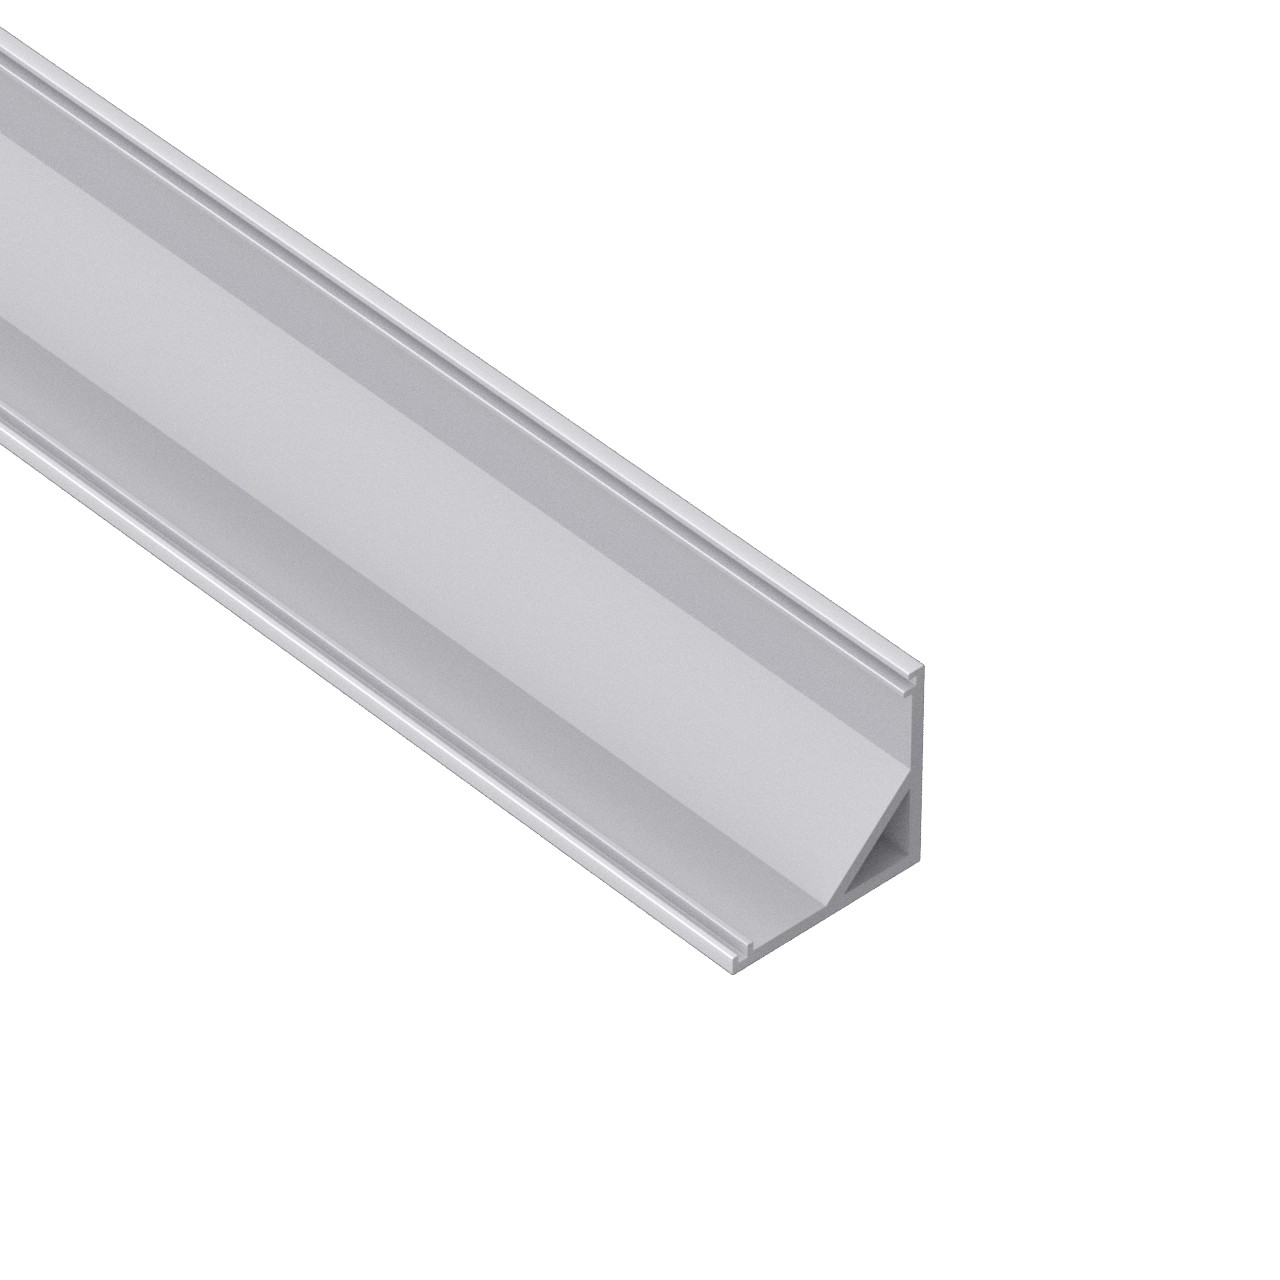 AC2 45˚ Corner Aluminium LED Profile for LED Strip 16x16mm